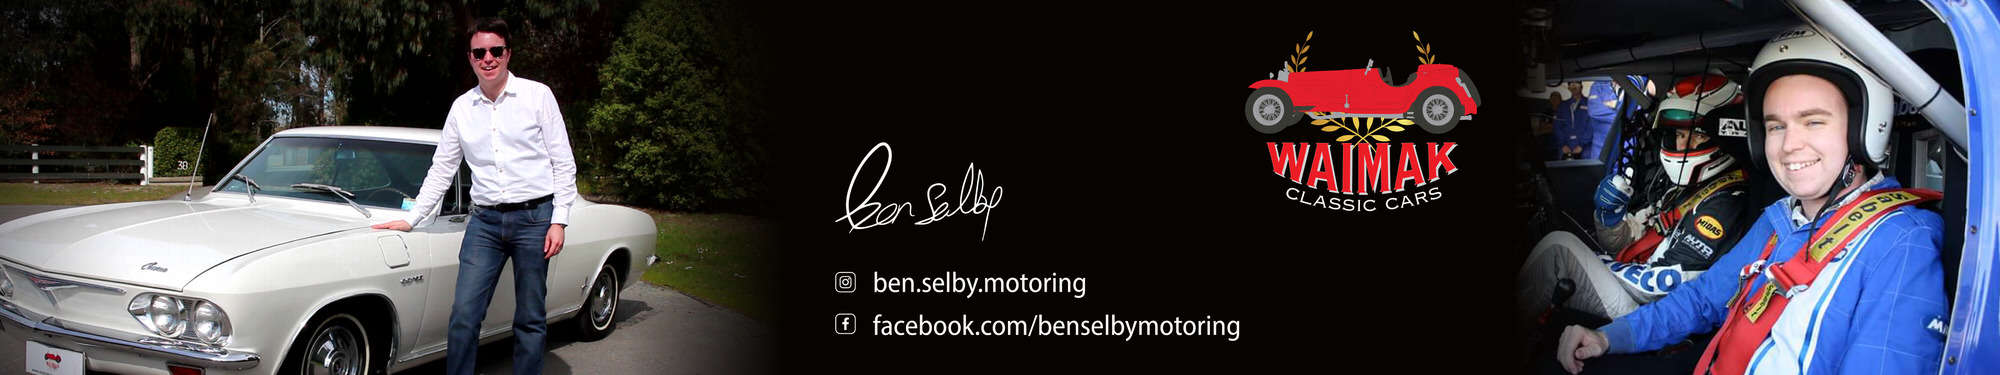 Ben Selby Banner